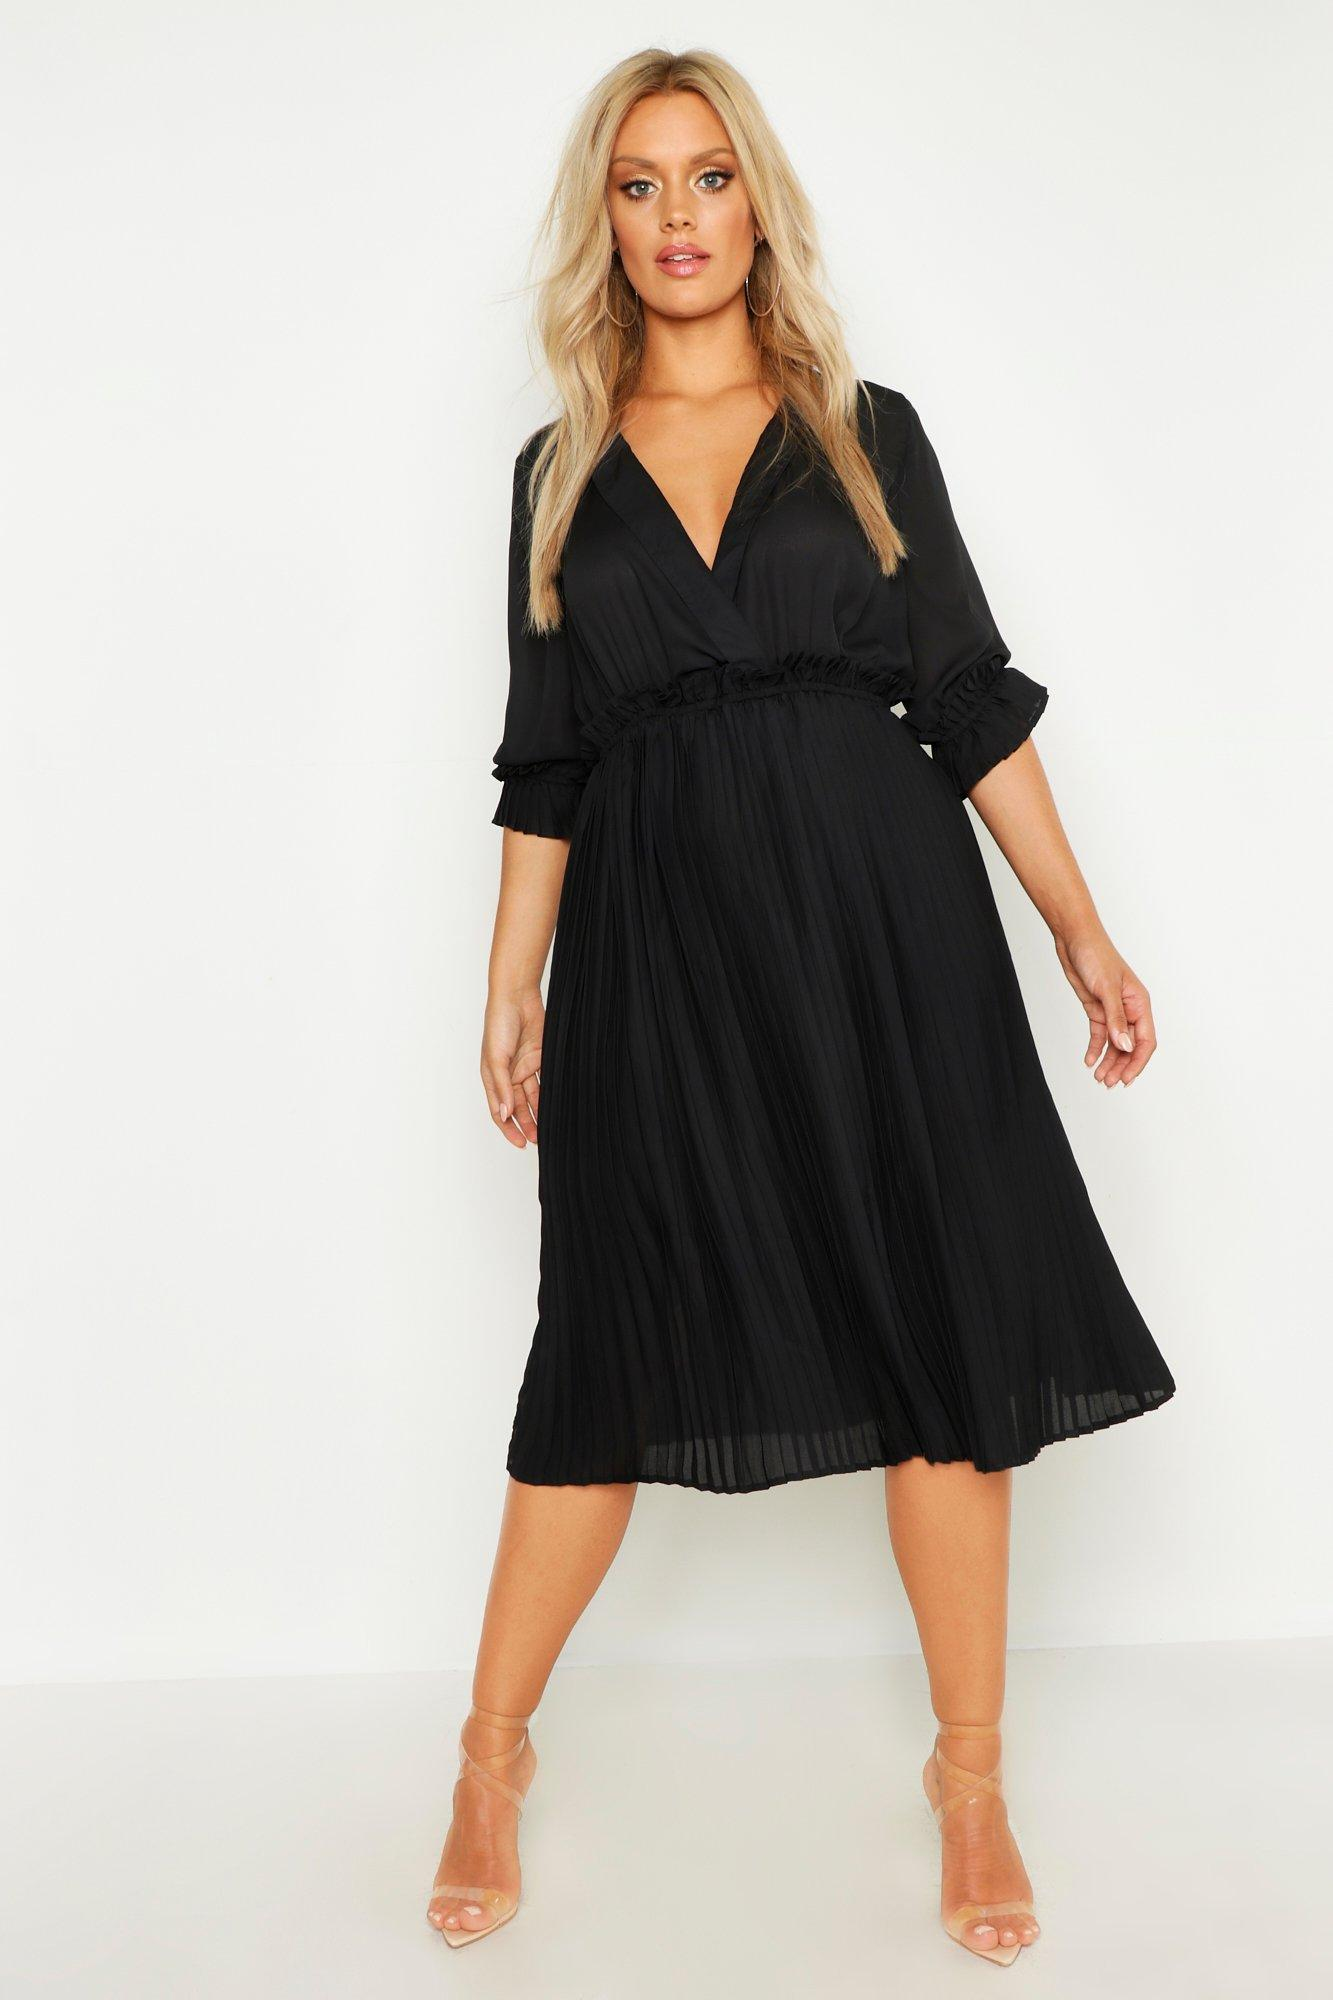 boohoo Womens Plus Ruffle Detail Pleated Midi Dress - Black - 18, Black